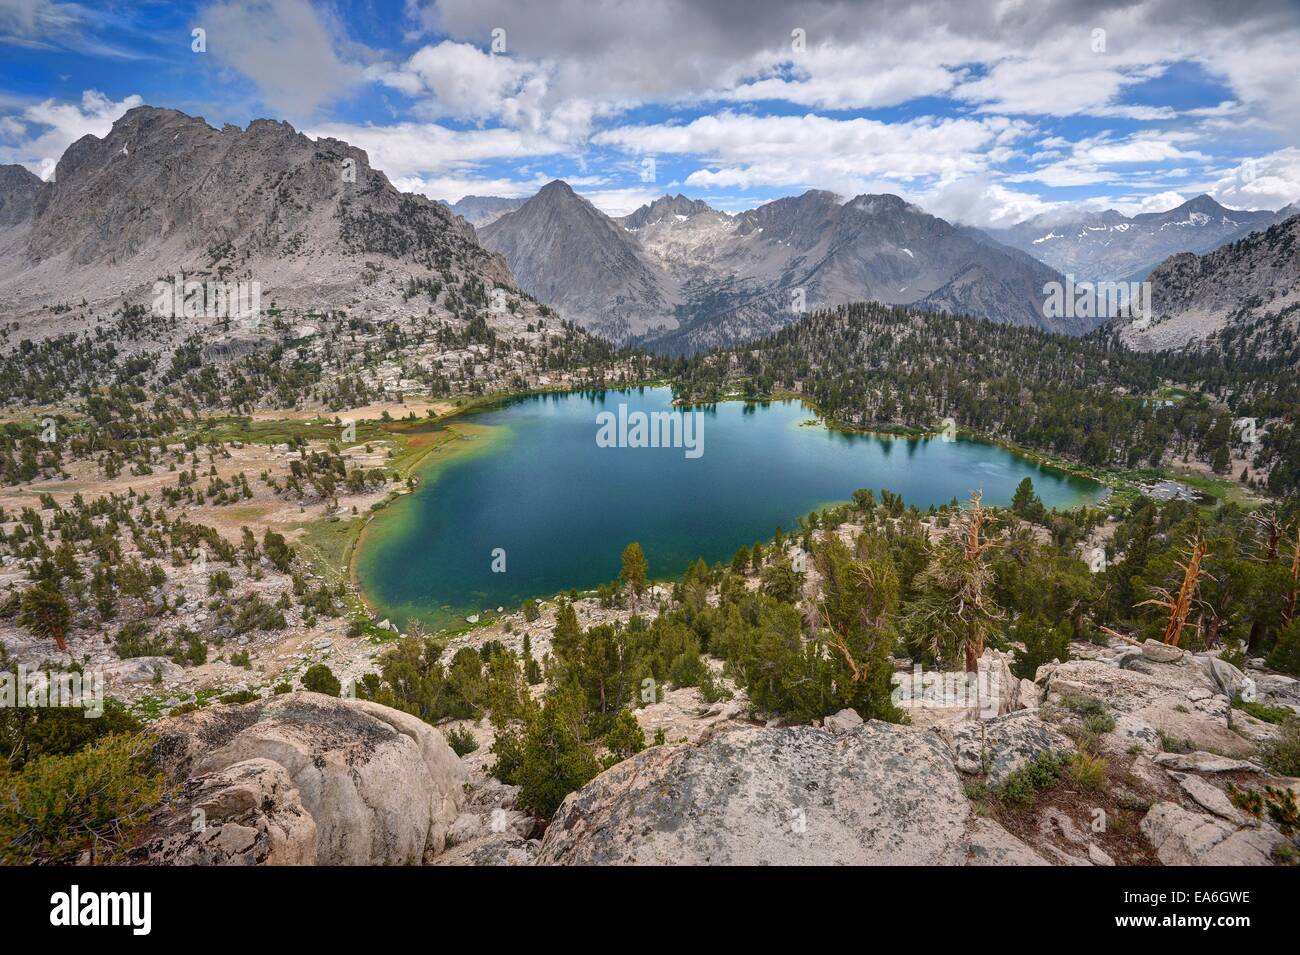 États-unis, Californie, Ansel Adams Wilderness Area, Inyo National Forest, Bullfrog spectaculaire Lake Photo Stock